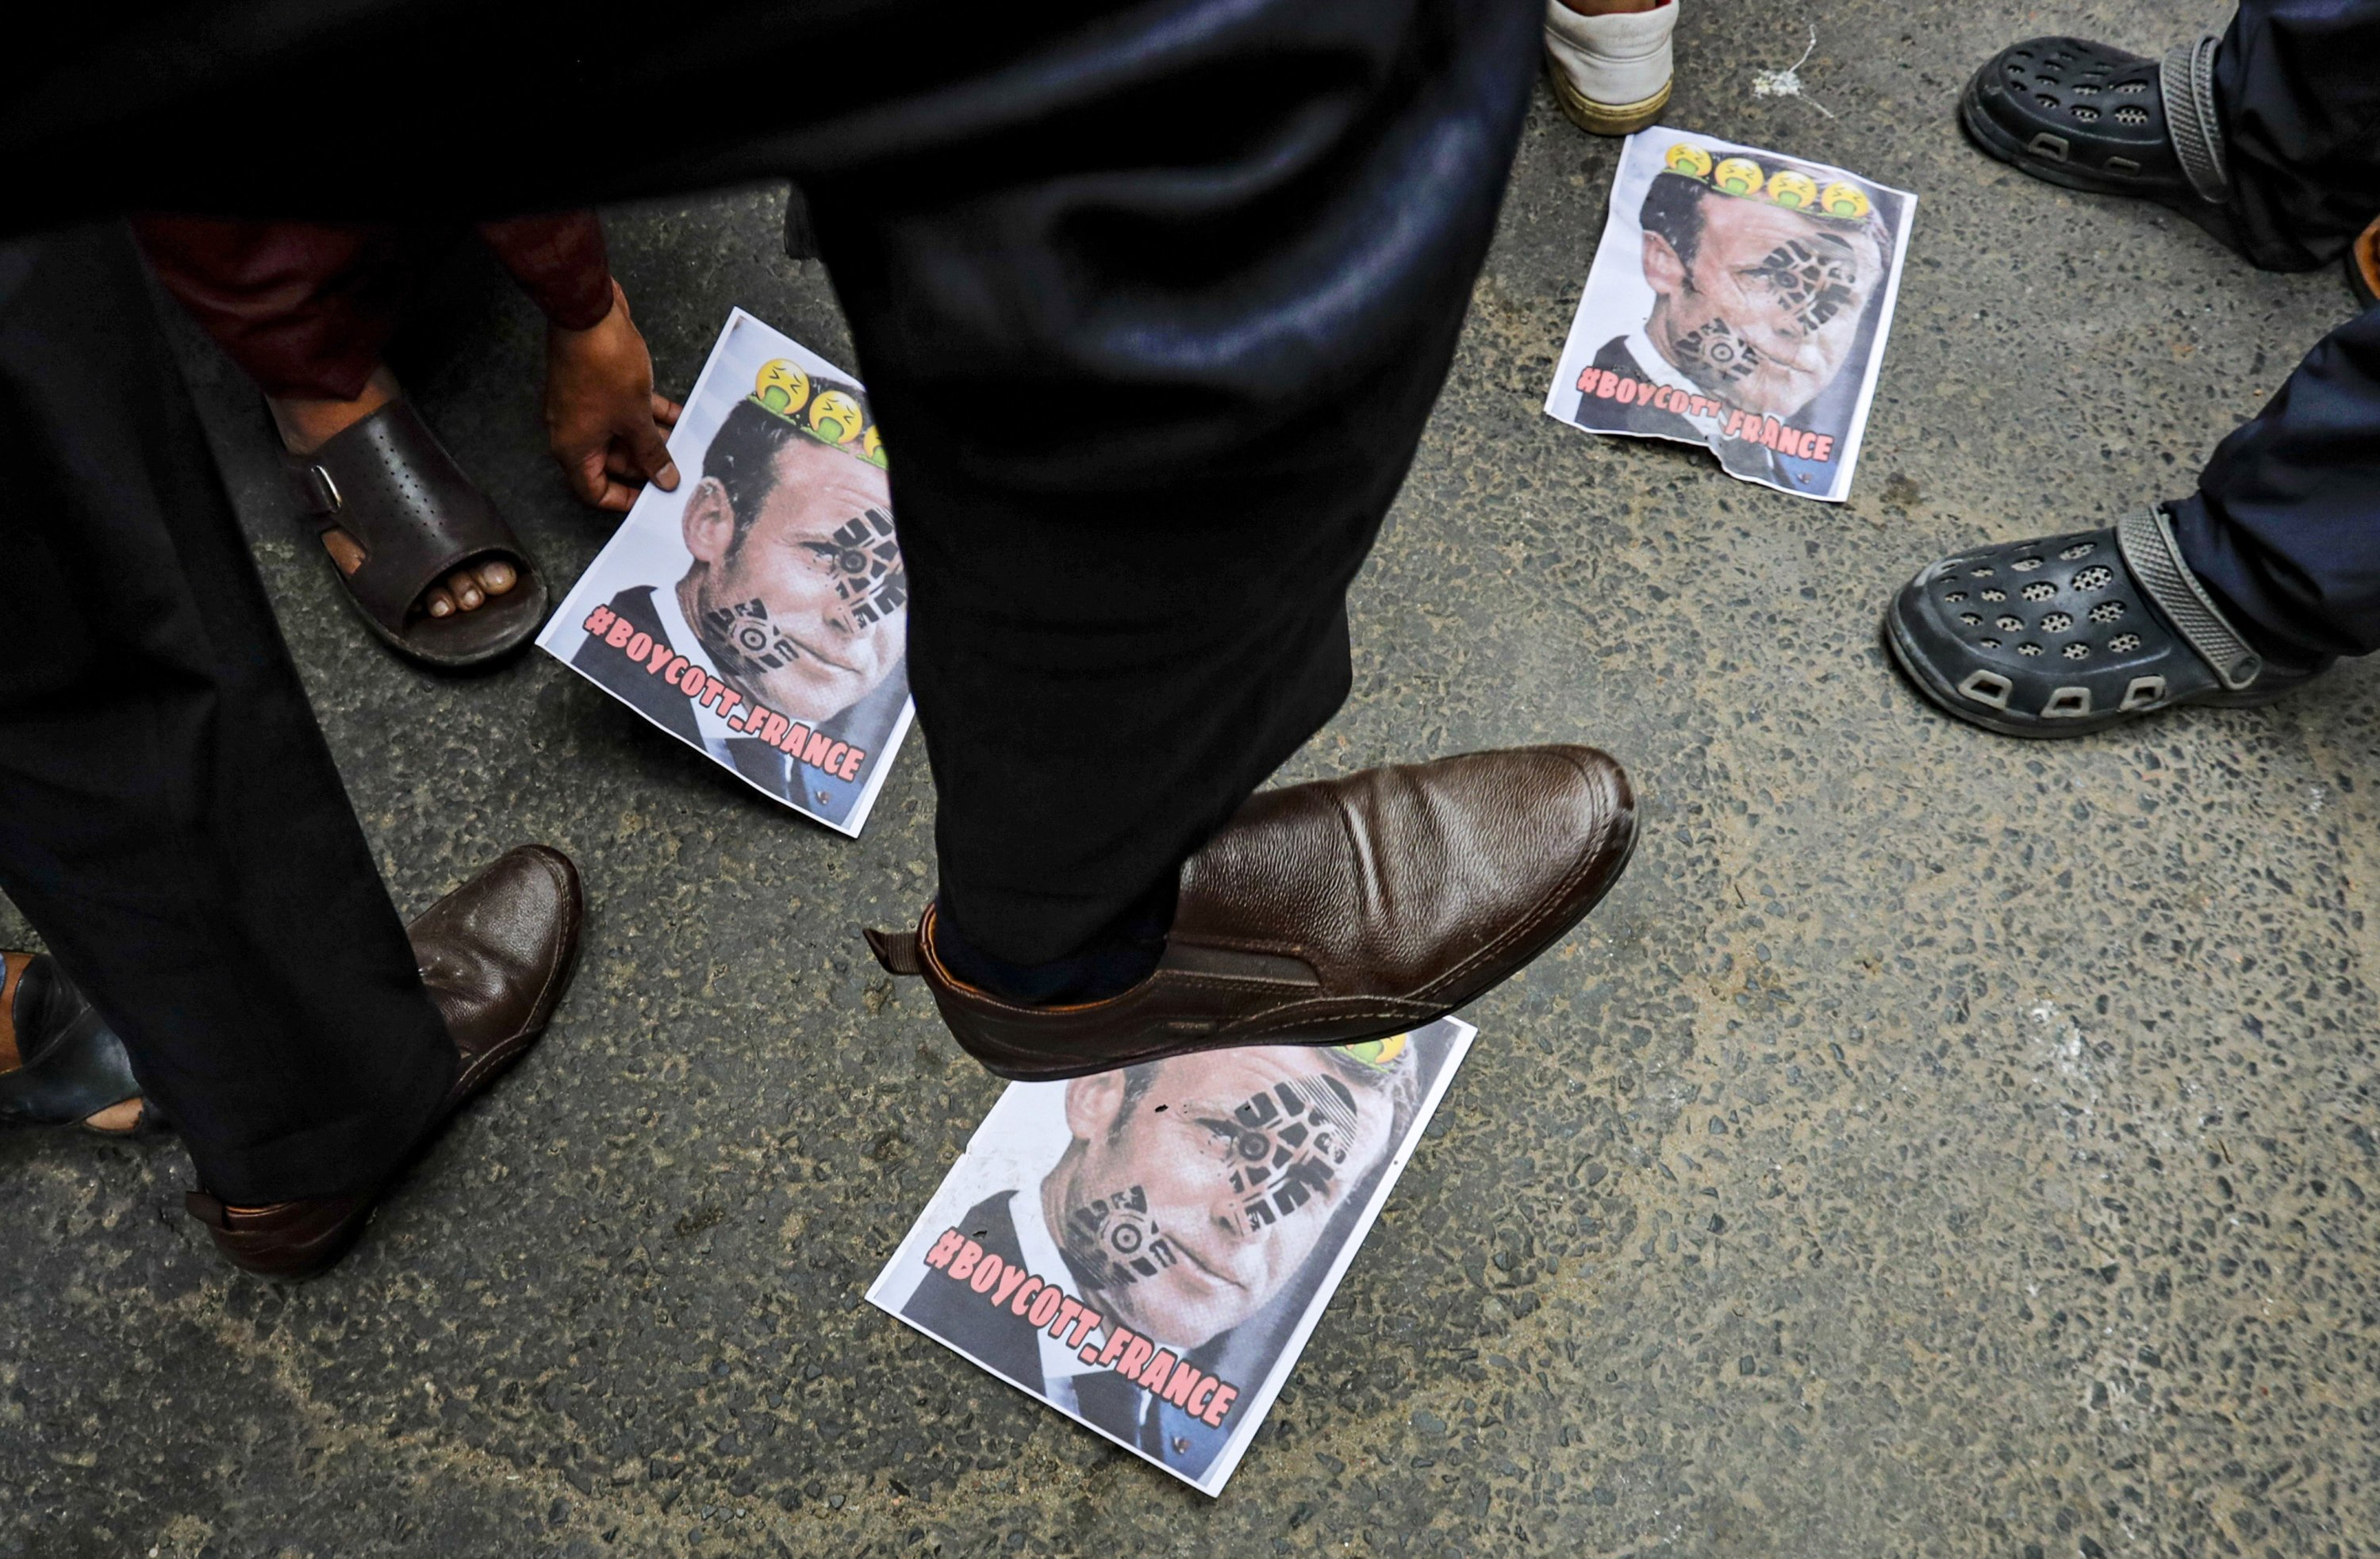 A Muslim activist stamps on posters bearing defaced images of French President Emmanuel Macron during a protest near the French Consulate, in Kolkata, India, Saturday, Oct. 31, 2020. (AP Photo)